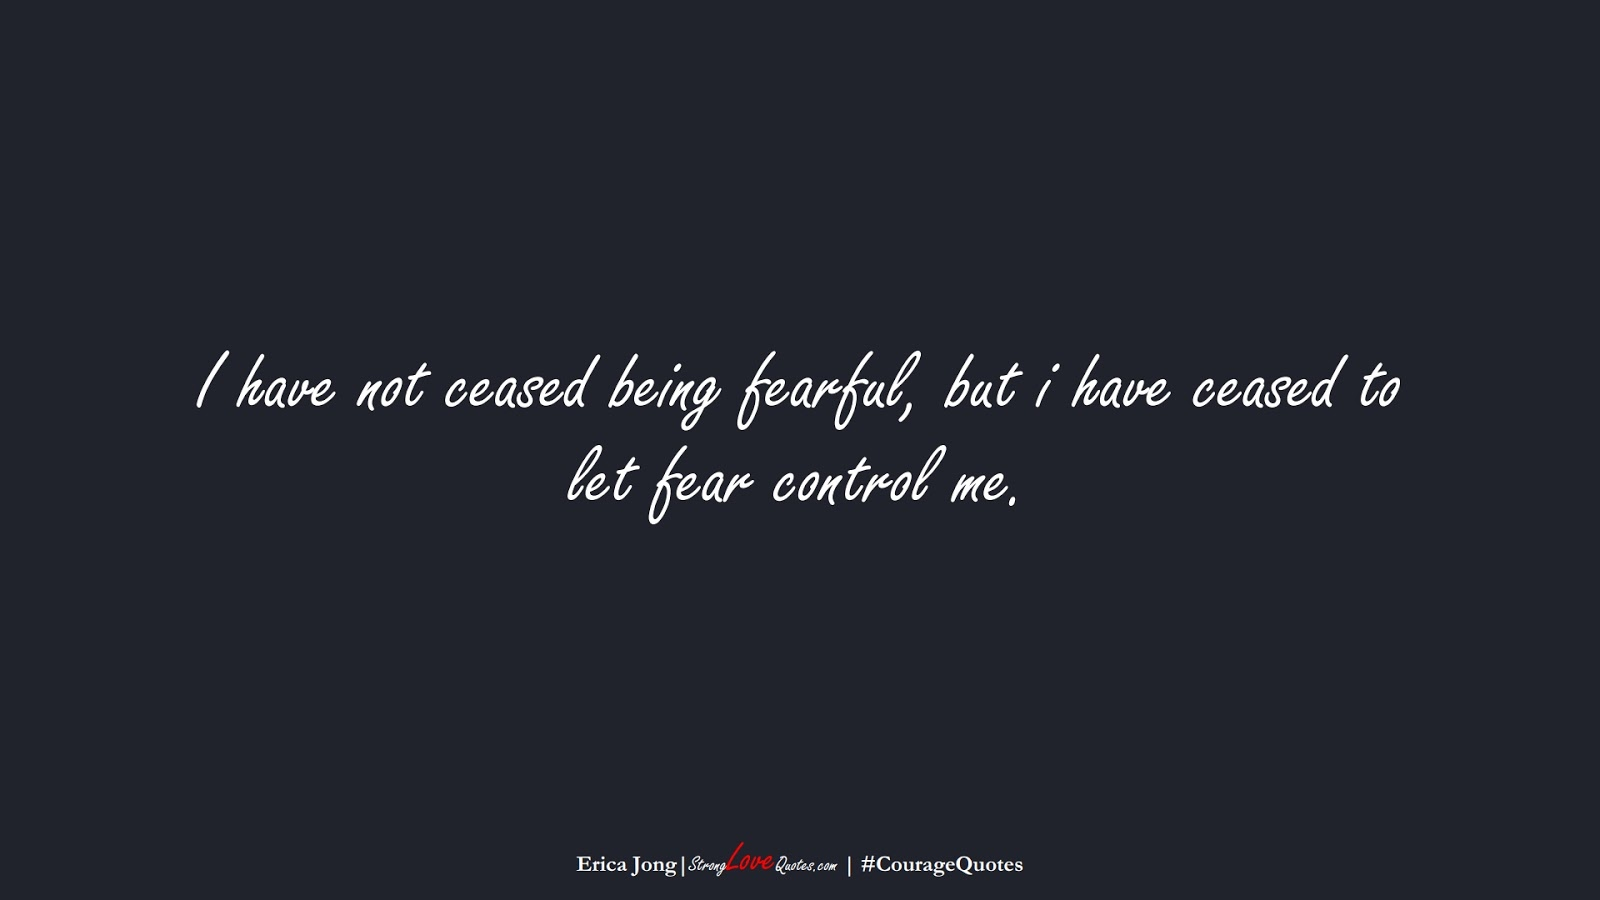 I have not ceased being fearful, but i have ceased to let fear control me. (Erica Jong);  #CourageQuotes